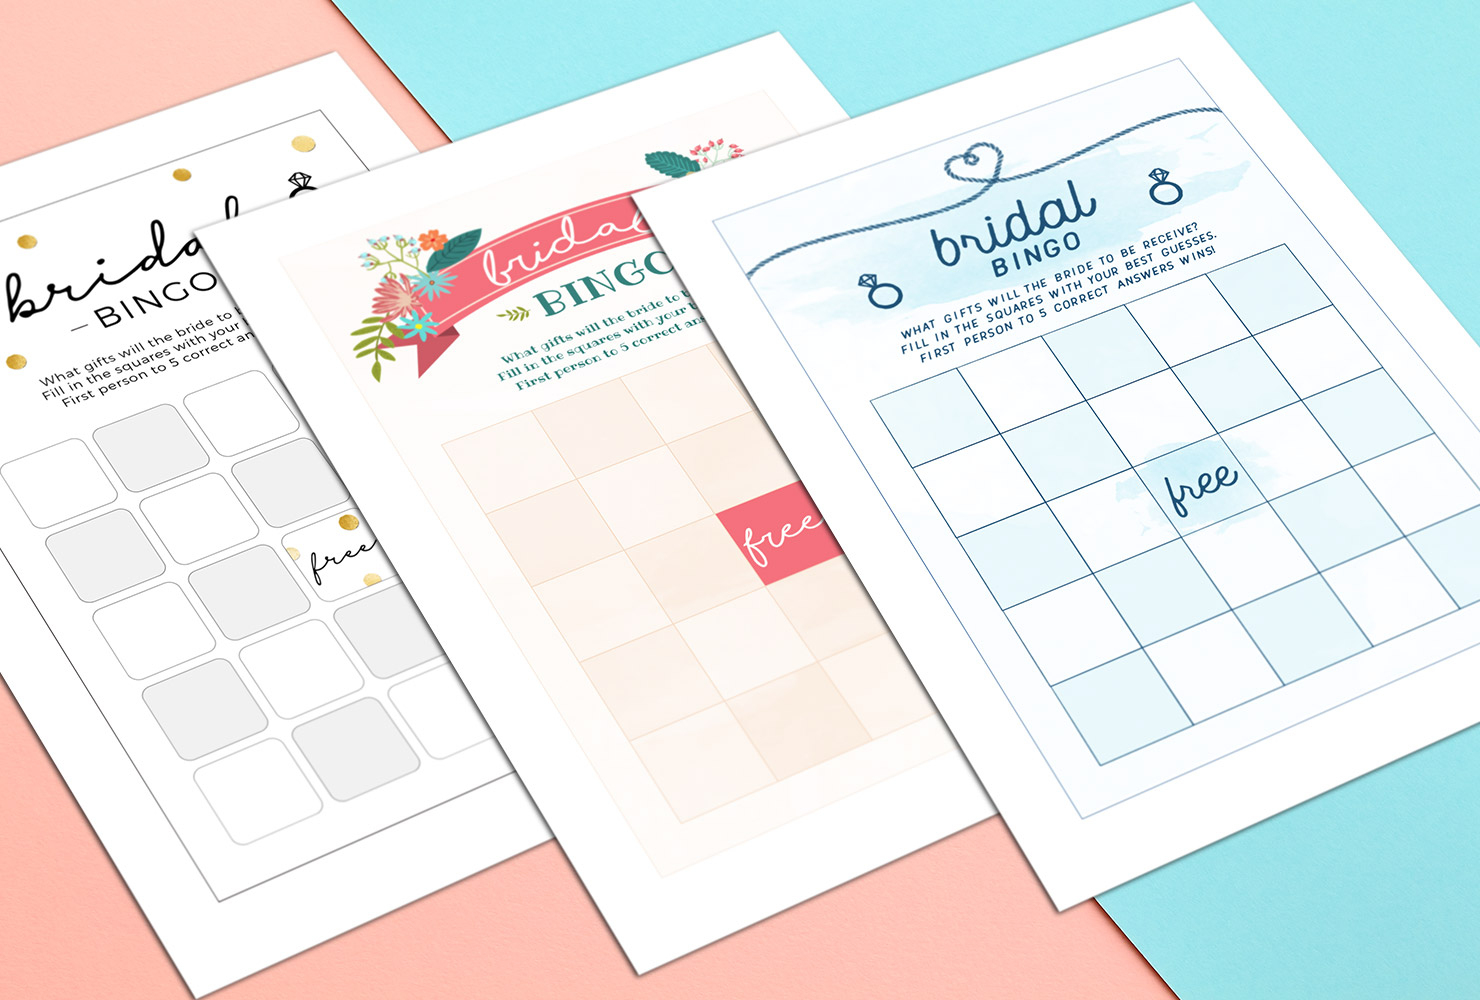 How To Play Bridal Shower Bingo (With Printables) | Shutterfly - Free Printable Bridal Shower Bingo